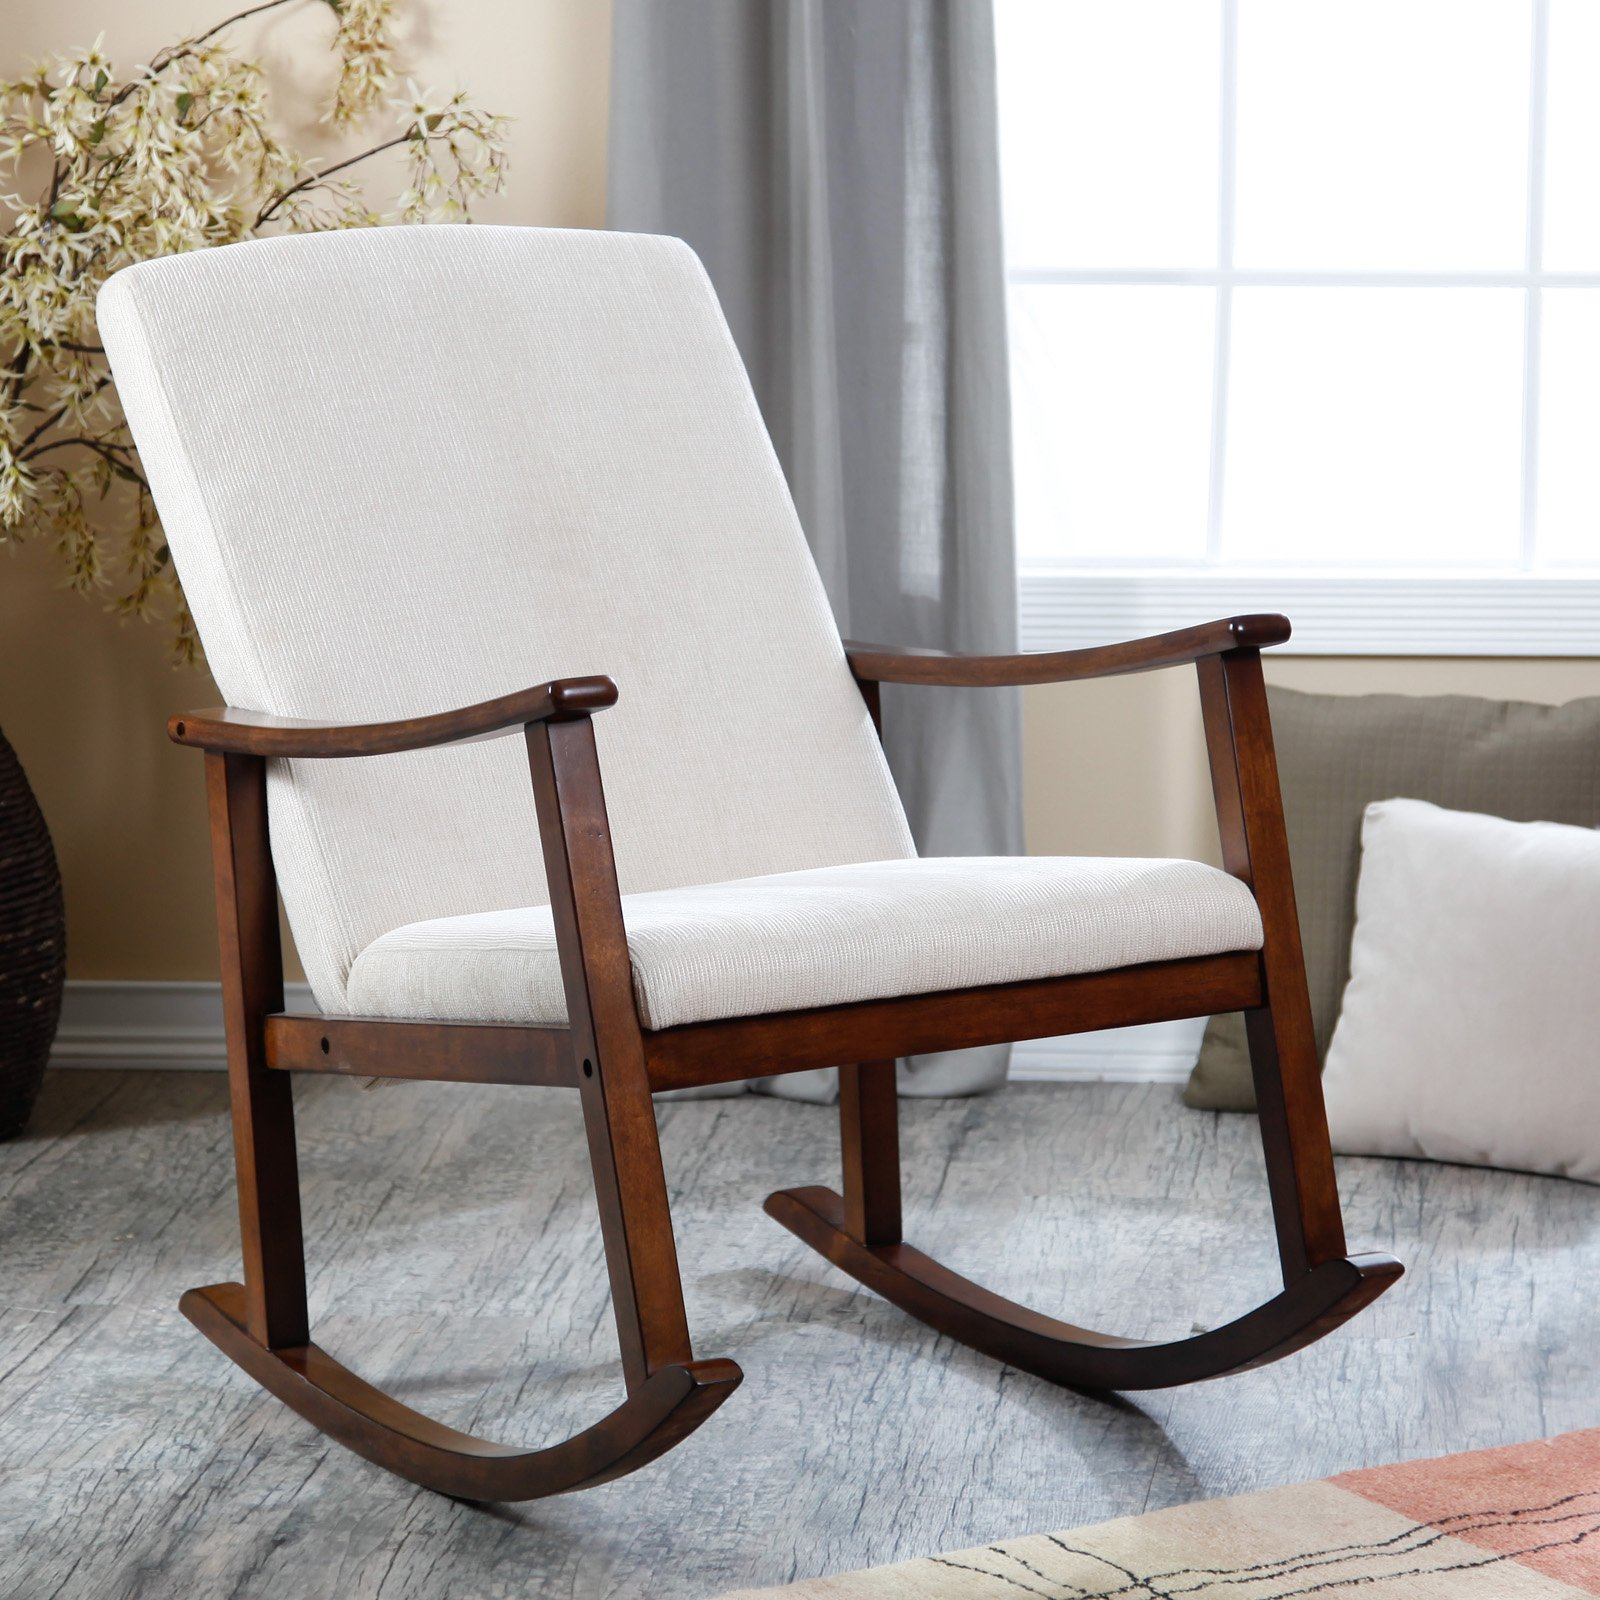 Furniture: Interesting Lowes Rocking Chairs For Home For Rocking Chairs In Cream Fabric And White (#12 of 20)